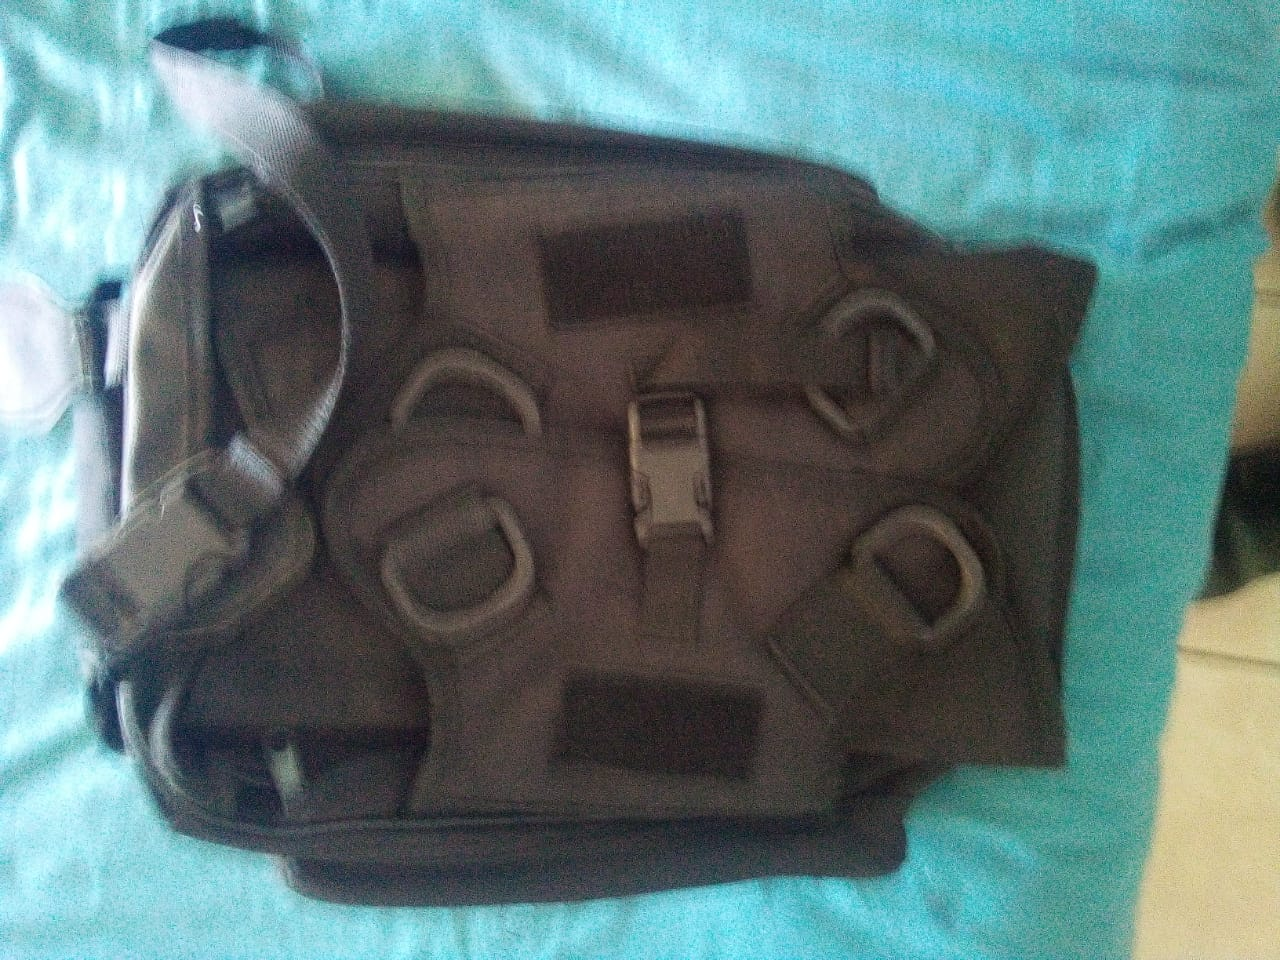 Oxfort 1 pro motorbike tank bag with strong magnets and waterproof see trough pouch